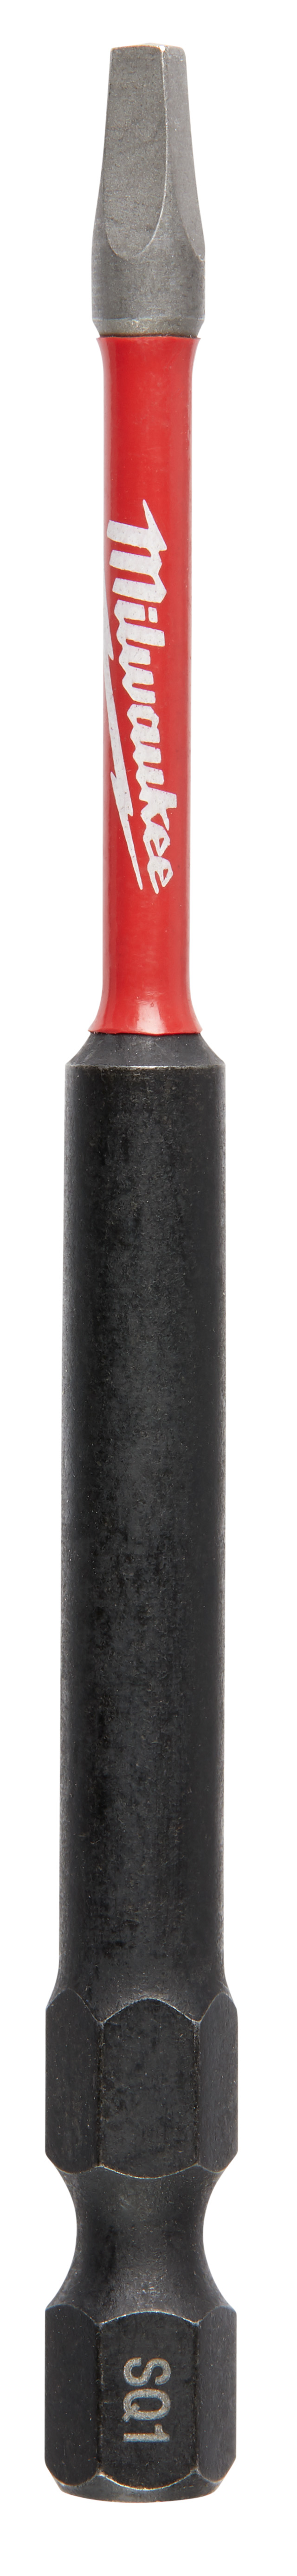 Milwaukee® SHOCKWAVE™ 48-32-4794 Impact Power Bit, #1 Square Recessed Point, 3-1/2 in OAL, 1/4 in, Steel